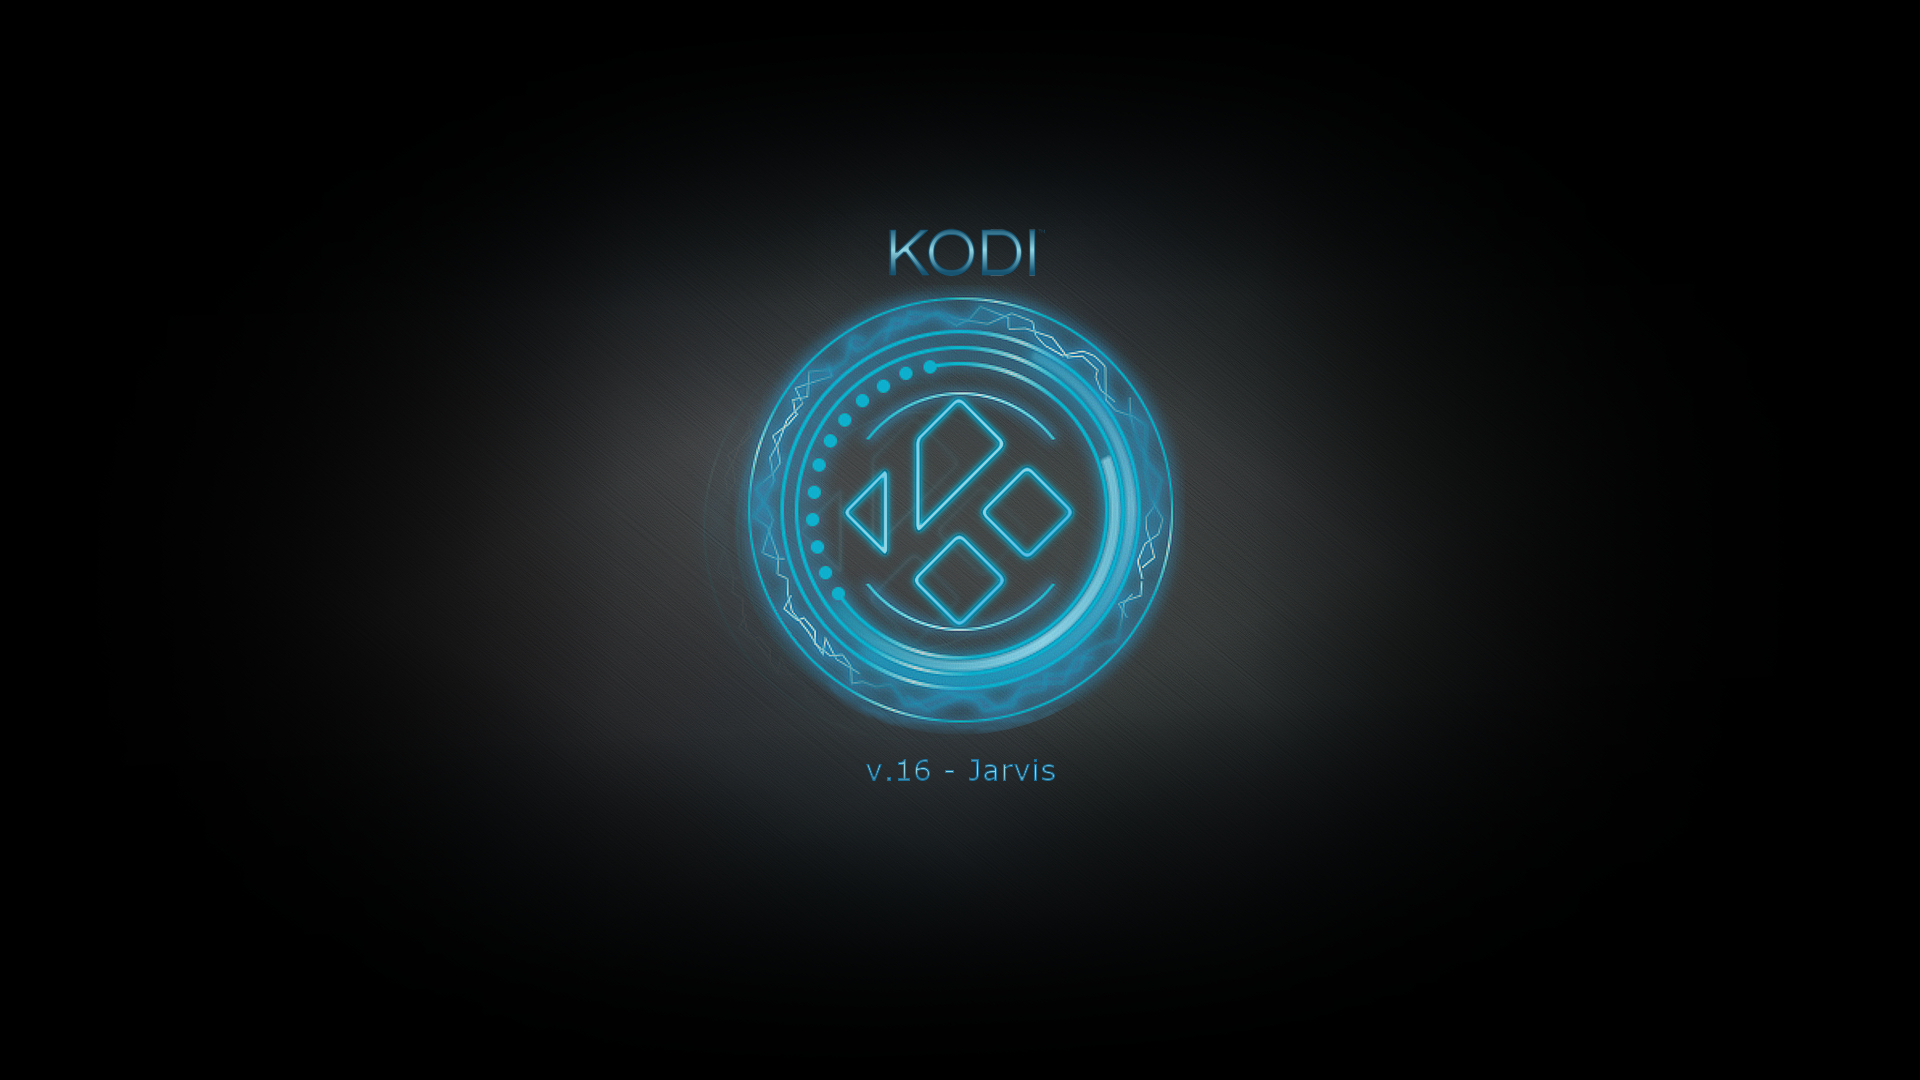 Kodi fanart and wallpaper -  Image 23465575764_10681e3f0c_o Jpg